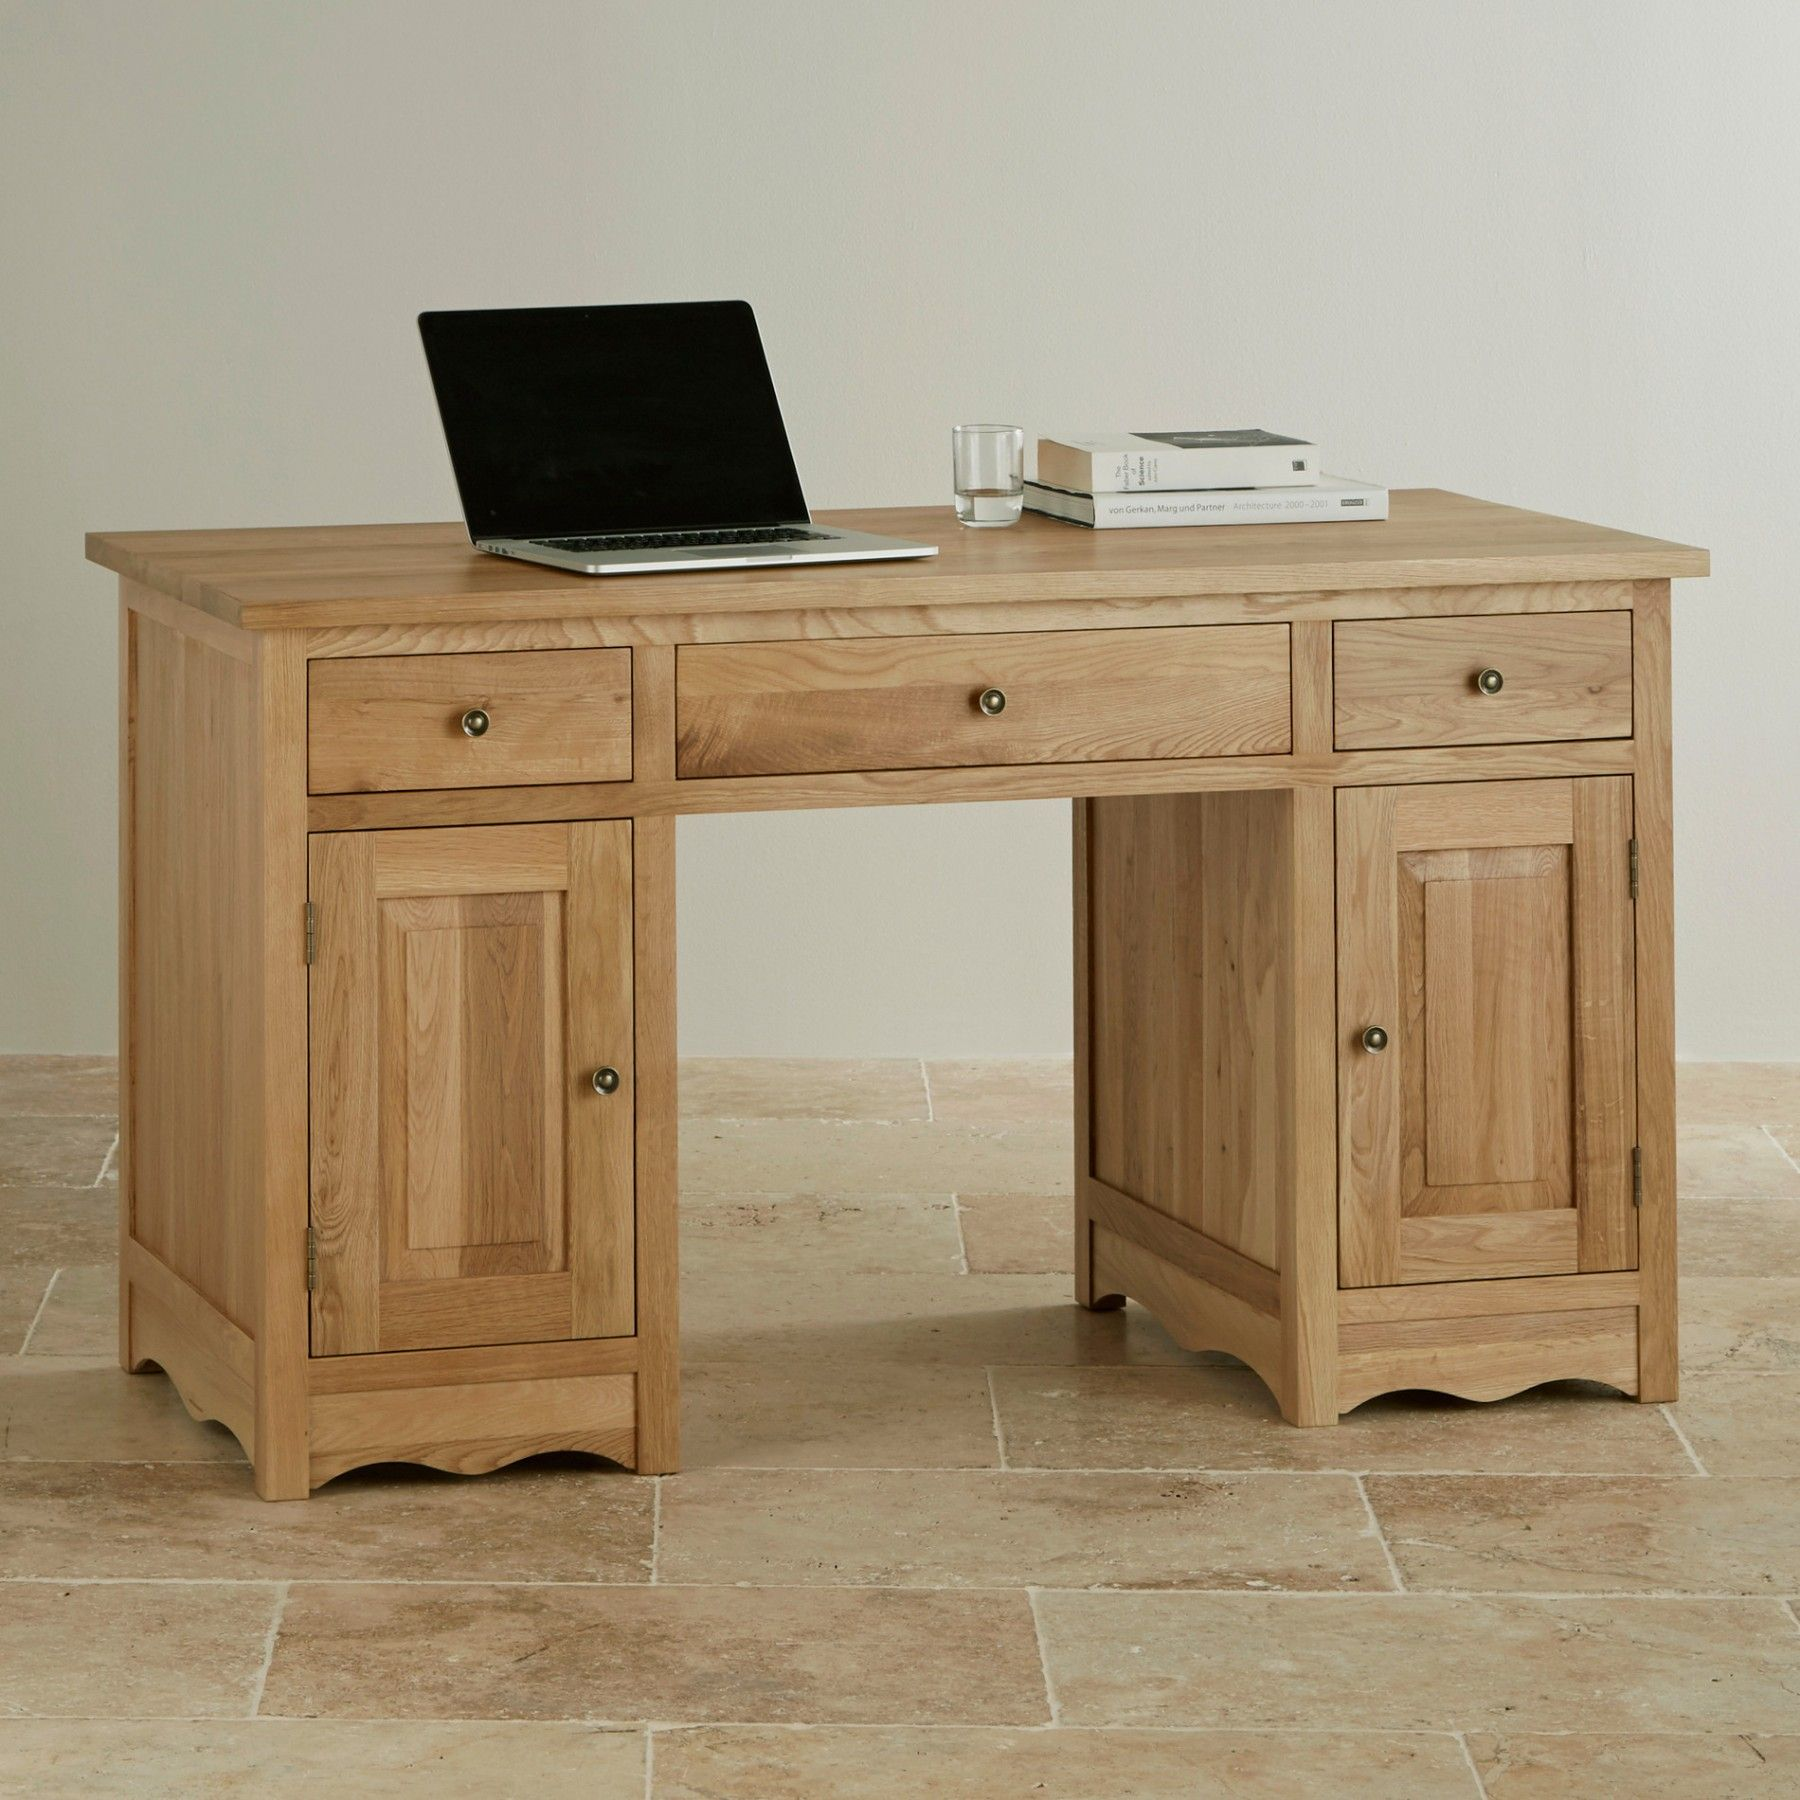 The Cairo Natural Solid Oak Compact Office Desk brings class to your home office.